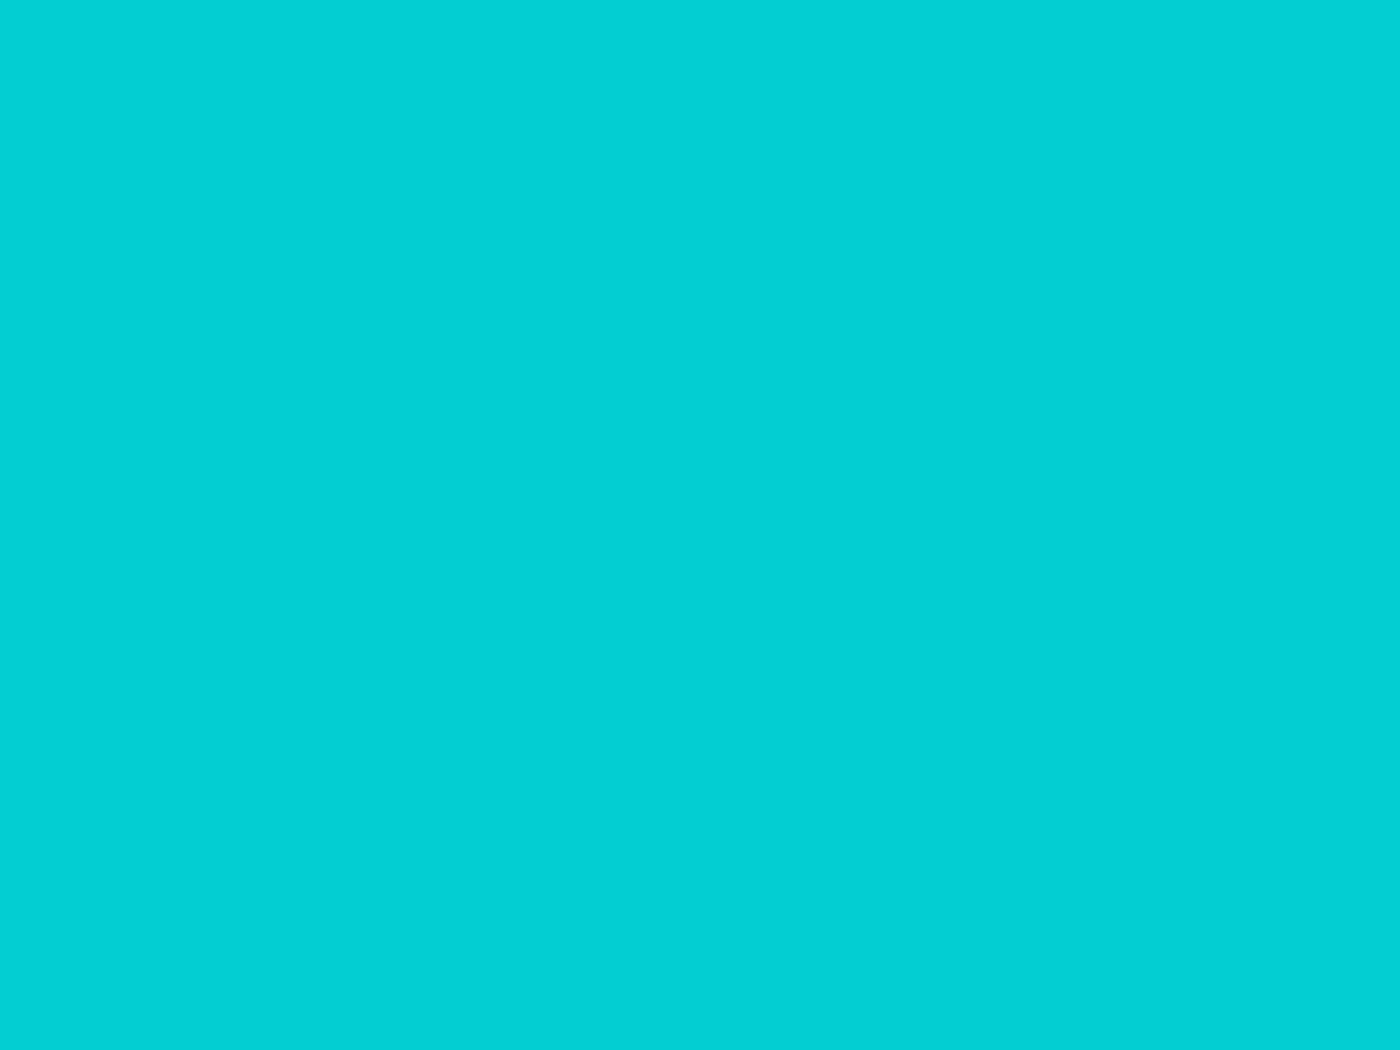 1400x1050 Dark Turquoise Solid Color Background